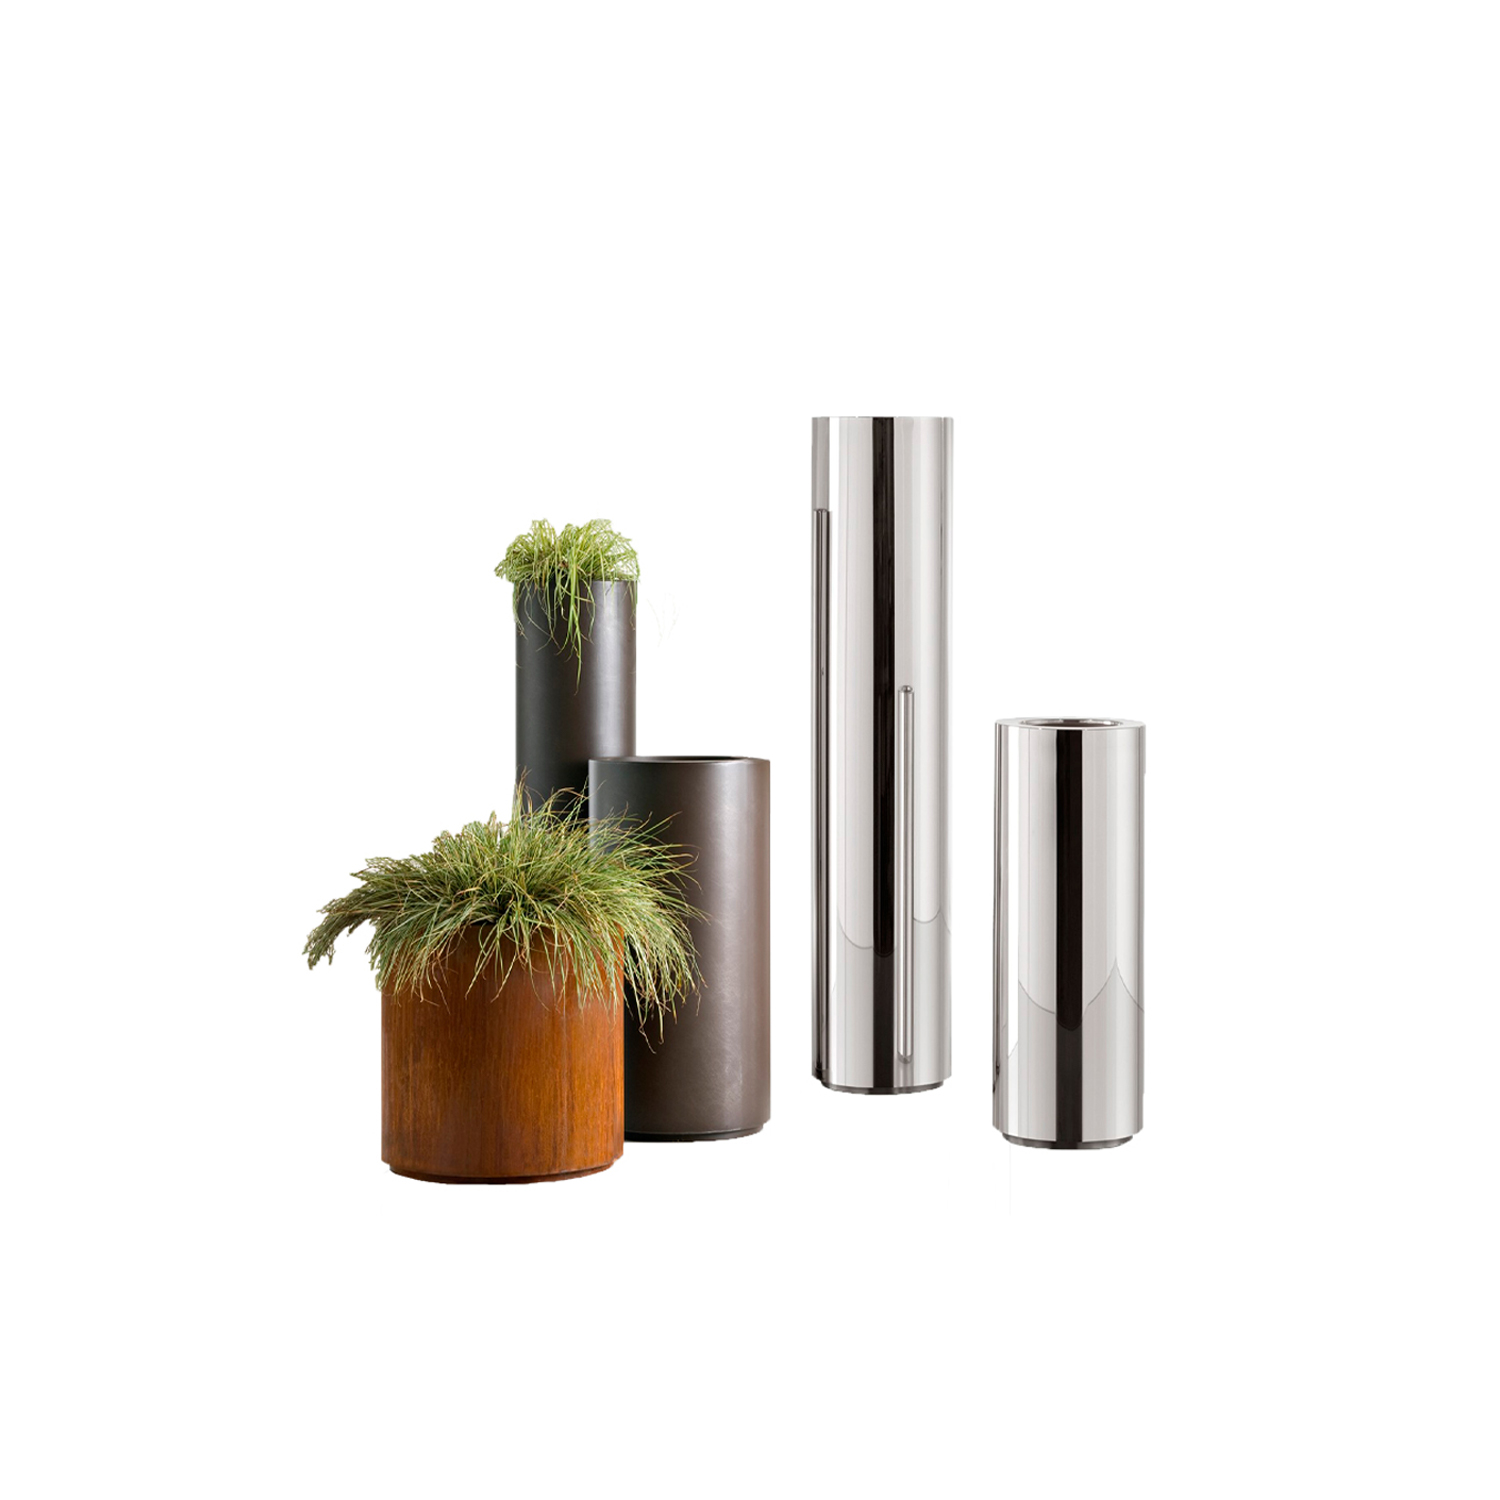 Cohiba Metal Cachepot - A pure cylindrical shape comes in De Castelli metals and finishes for a series of cachepots with abounding stage presence.‎ In their linear simplicity, these objects become landmarks for the home, not just accessories but also cardinal points that orient the space.‎ In different heights and diameters, they stand alone or make up multi-faceted sets.‎